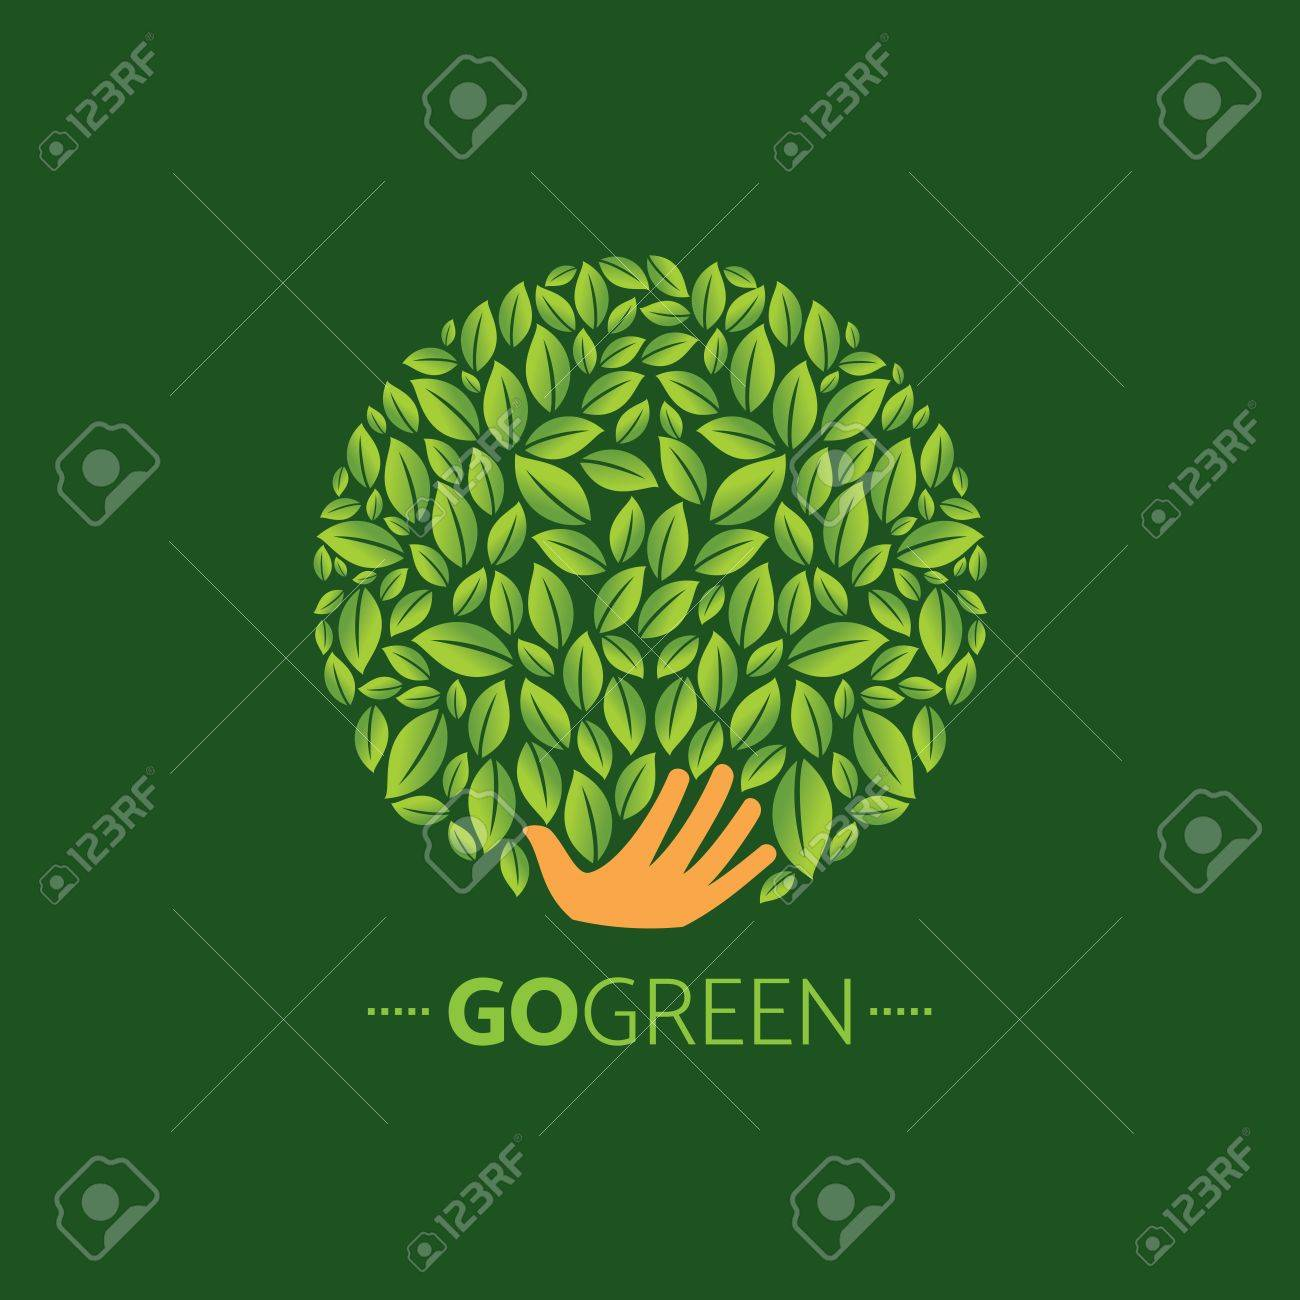 ecological symbols and signs,human's hands and green growing plants & leafs - 61581060